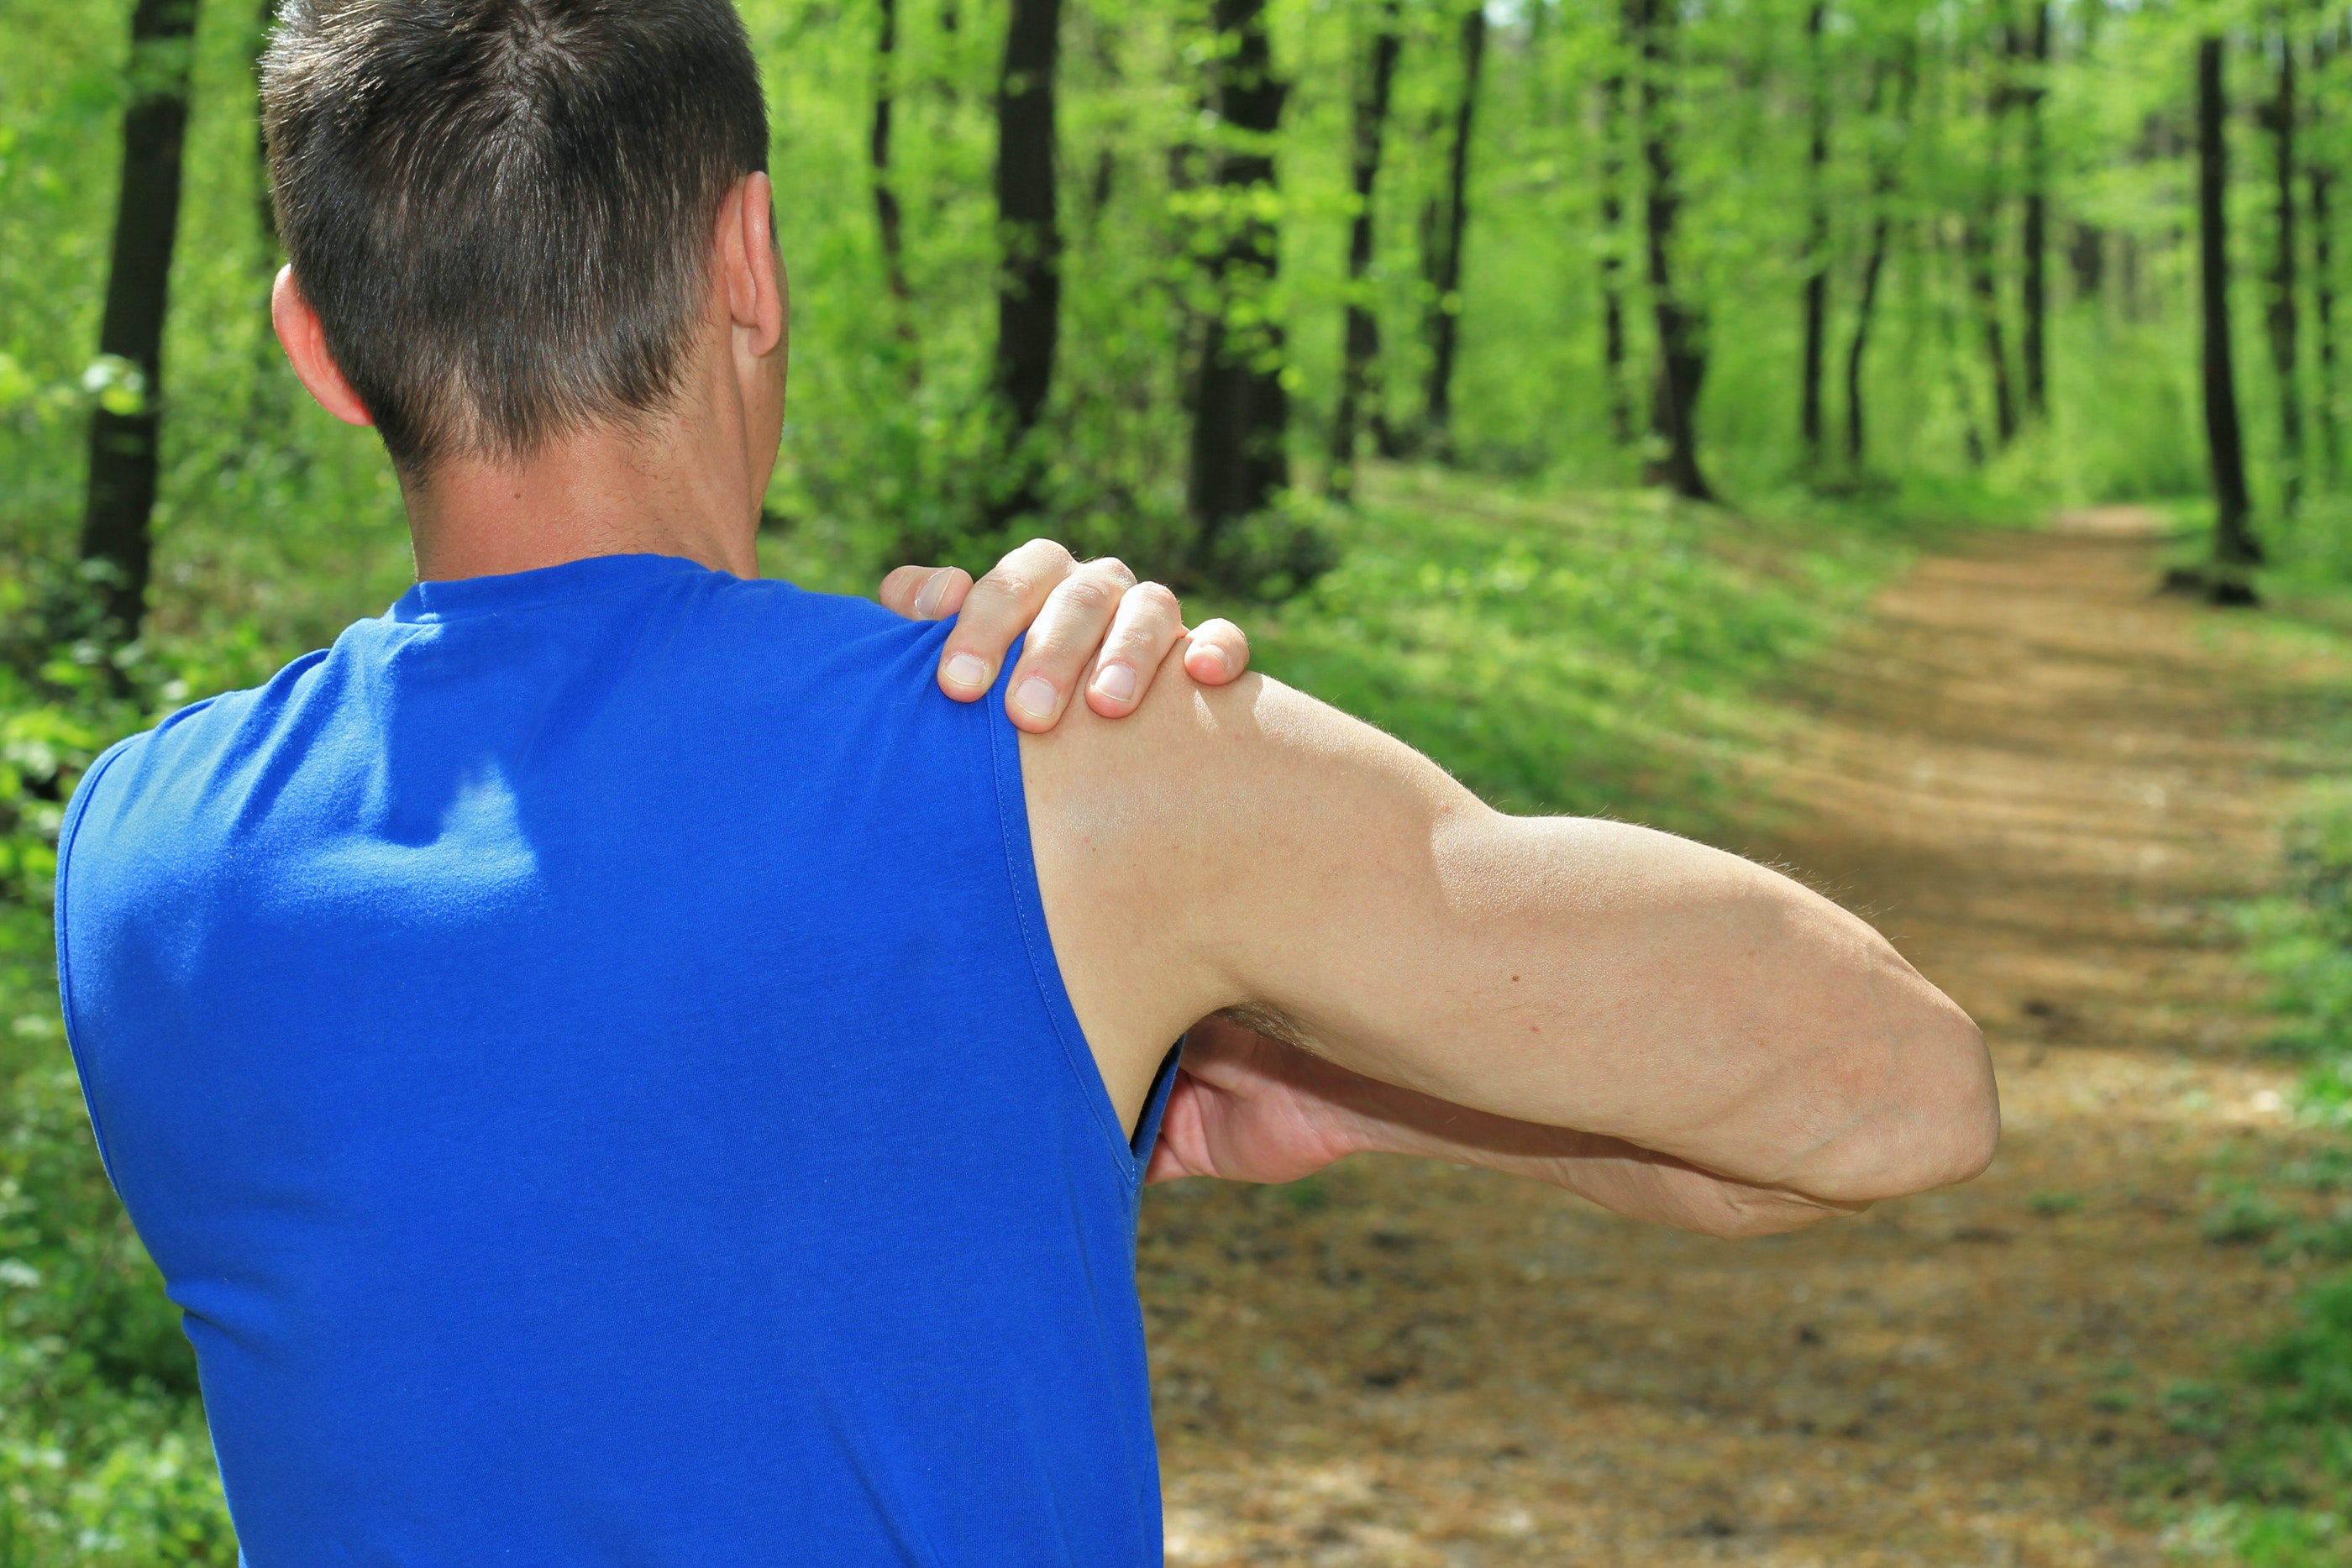 An image depicting a person suffering from right shoulder numbness symptoms